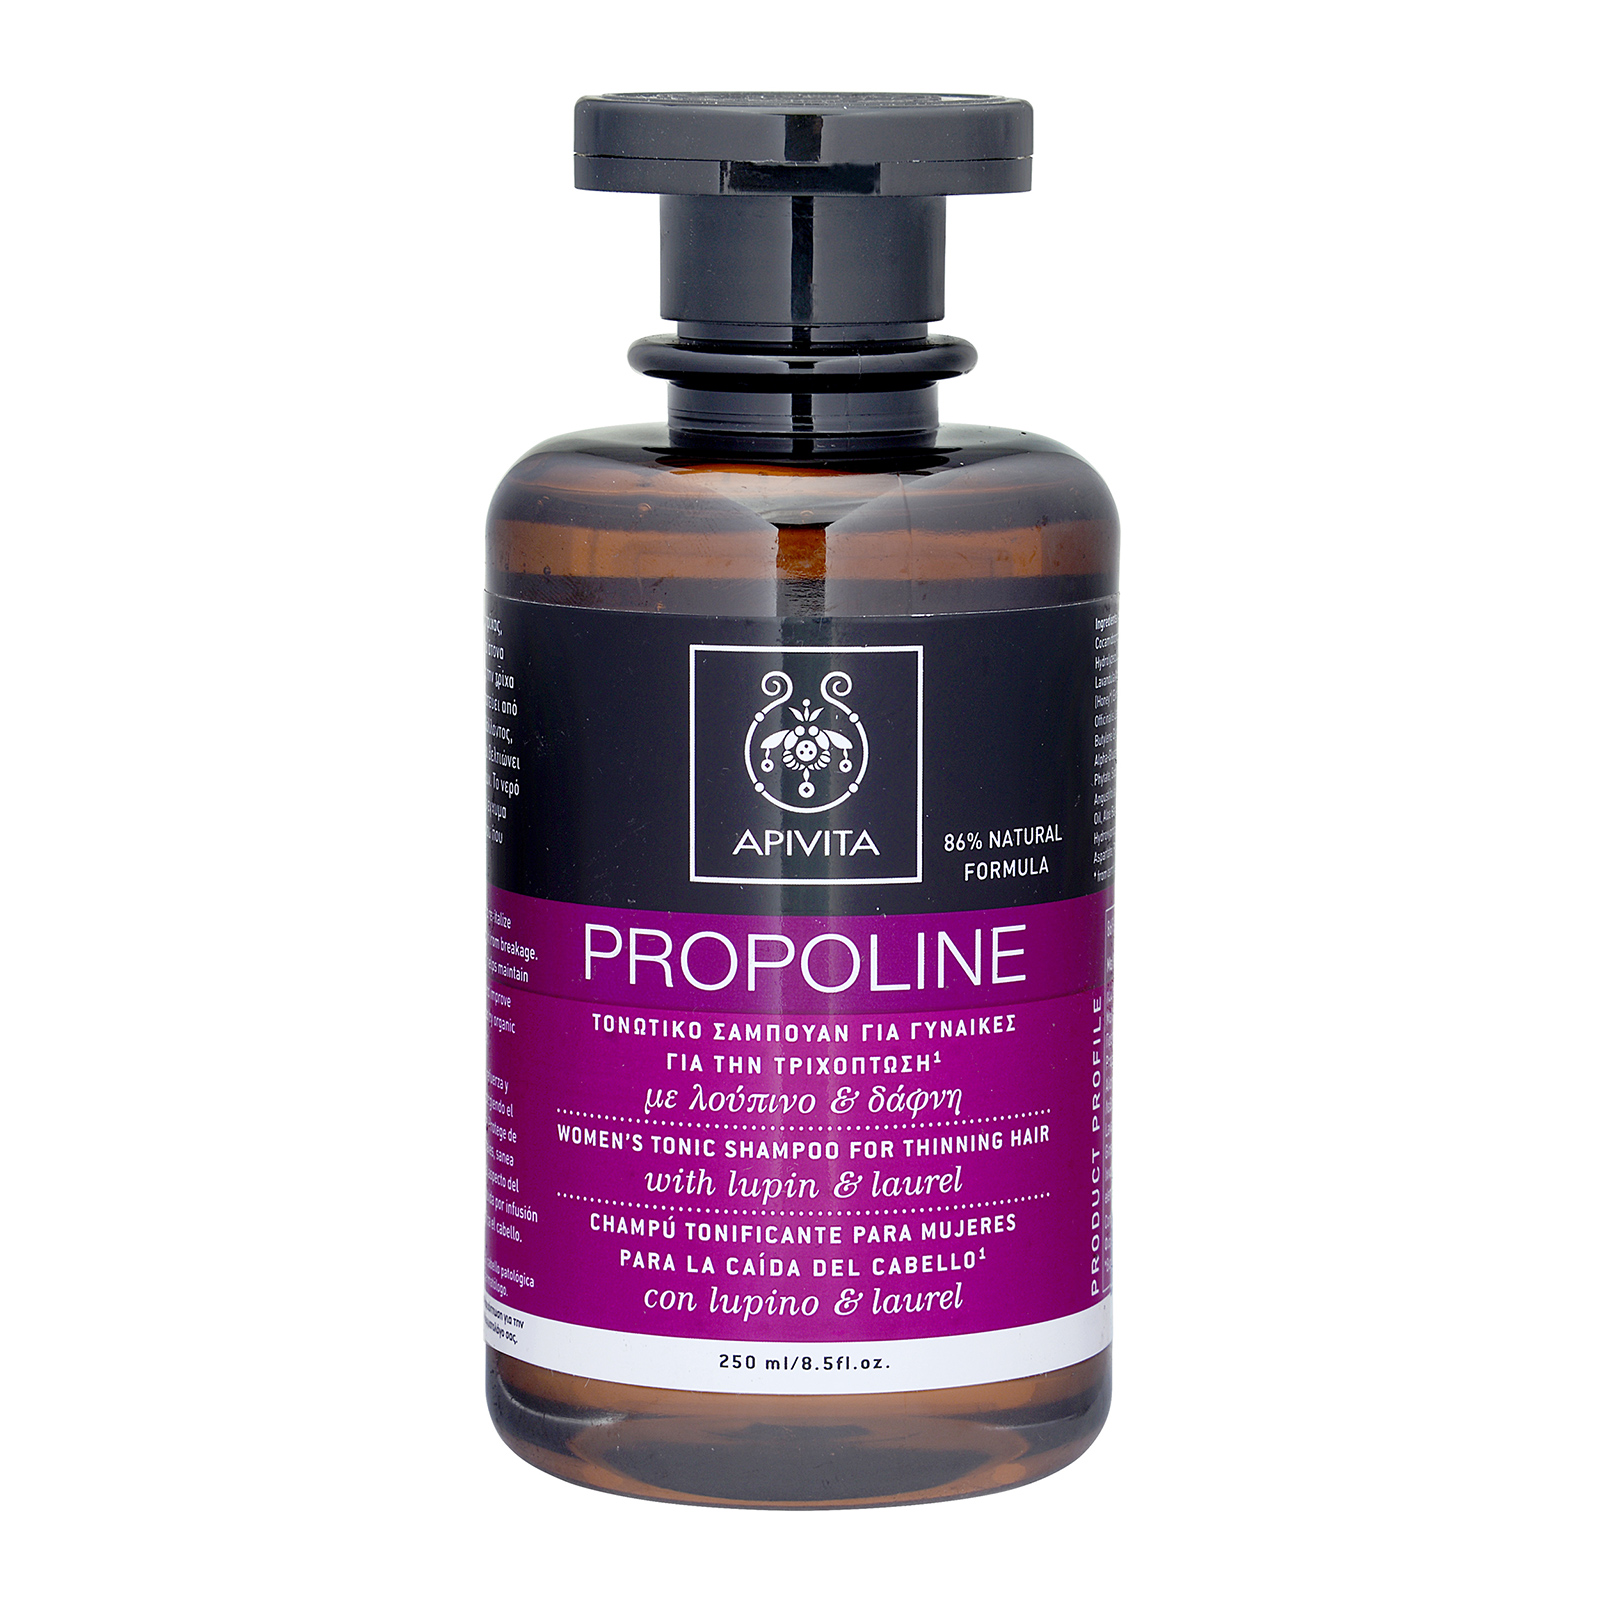 APIVITA Propoline Women's Tonic Shampoo for Thinning Hair with Lupin & Rosemary  8.5oz, 250ml